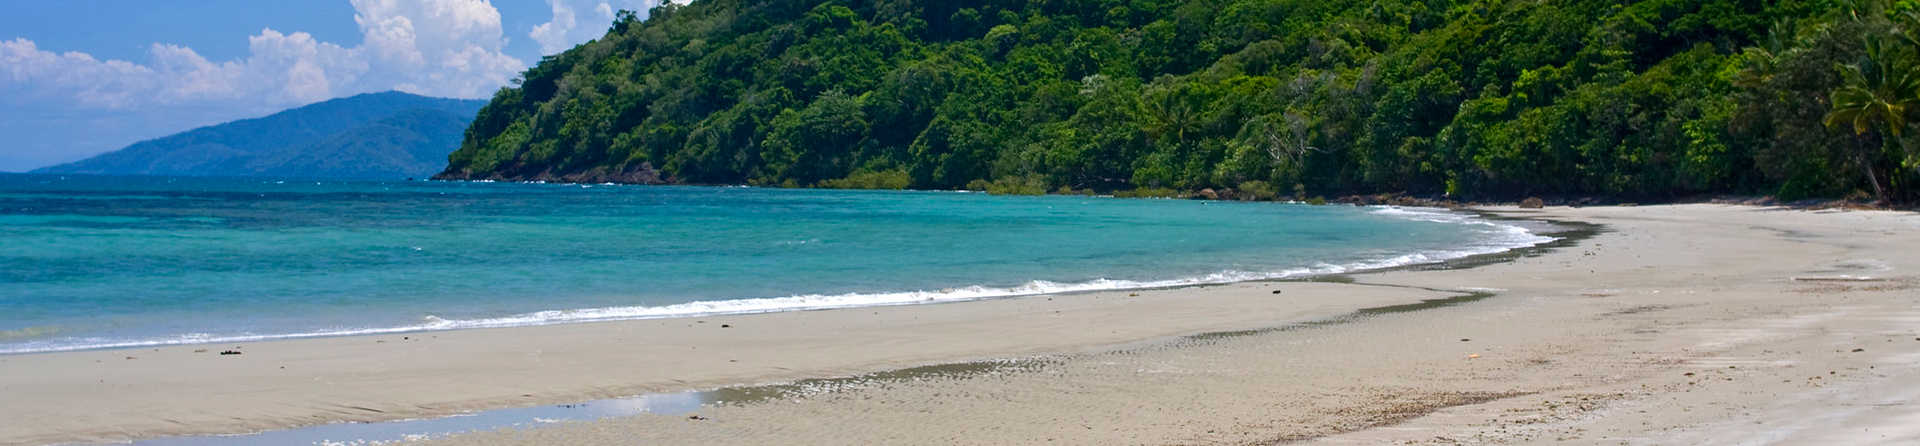 Why is Cape Tribulation so famous?